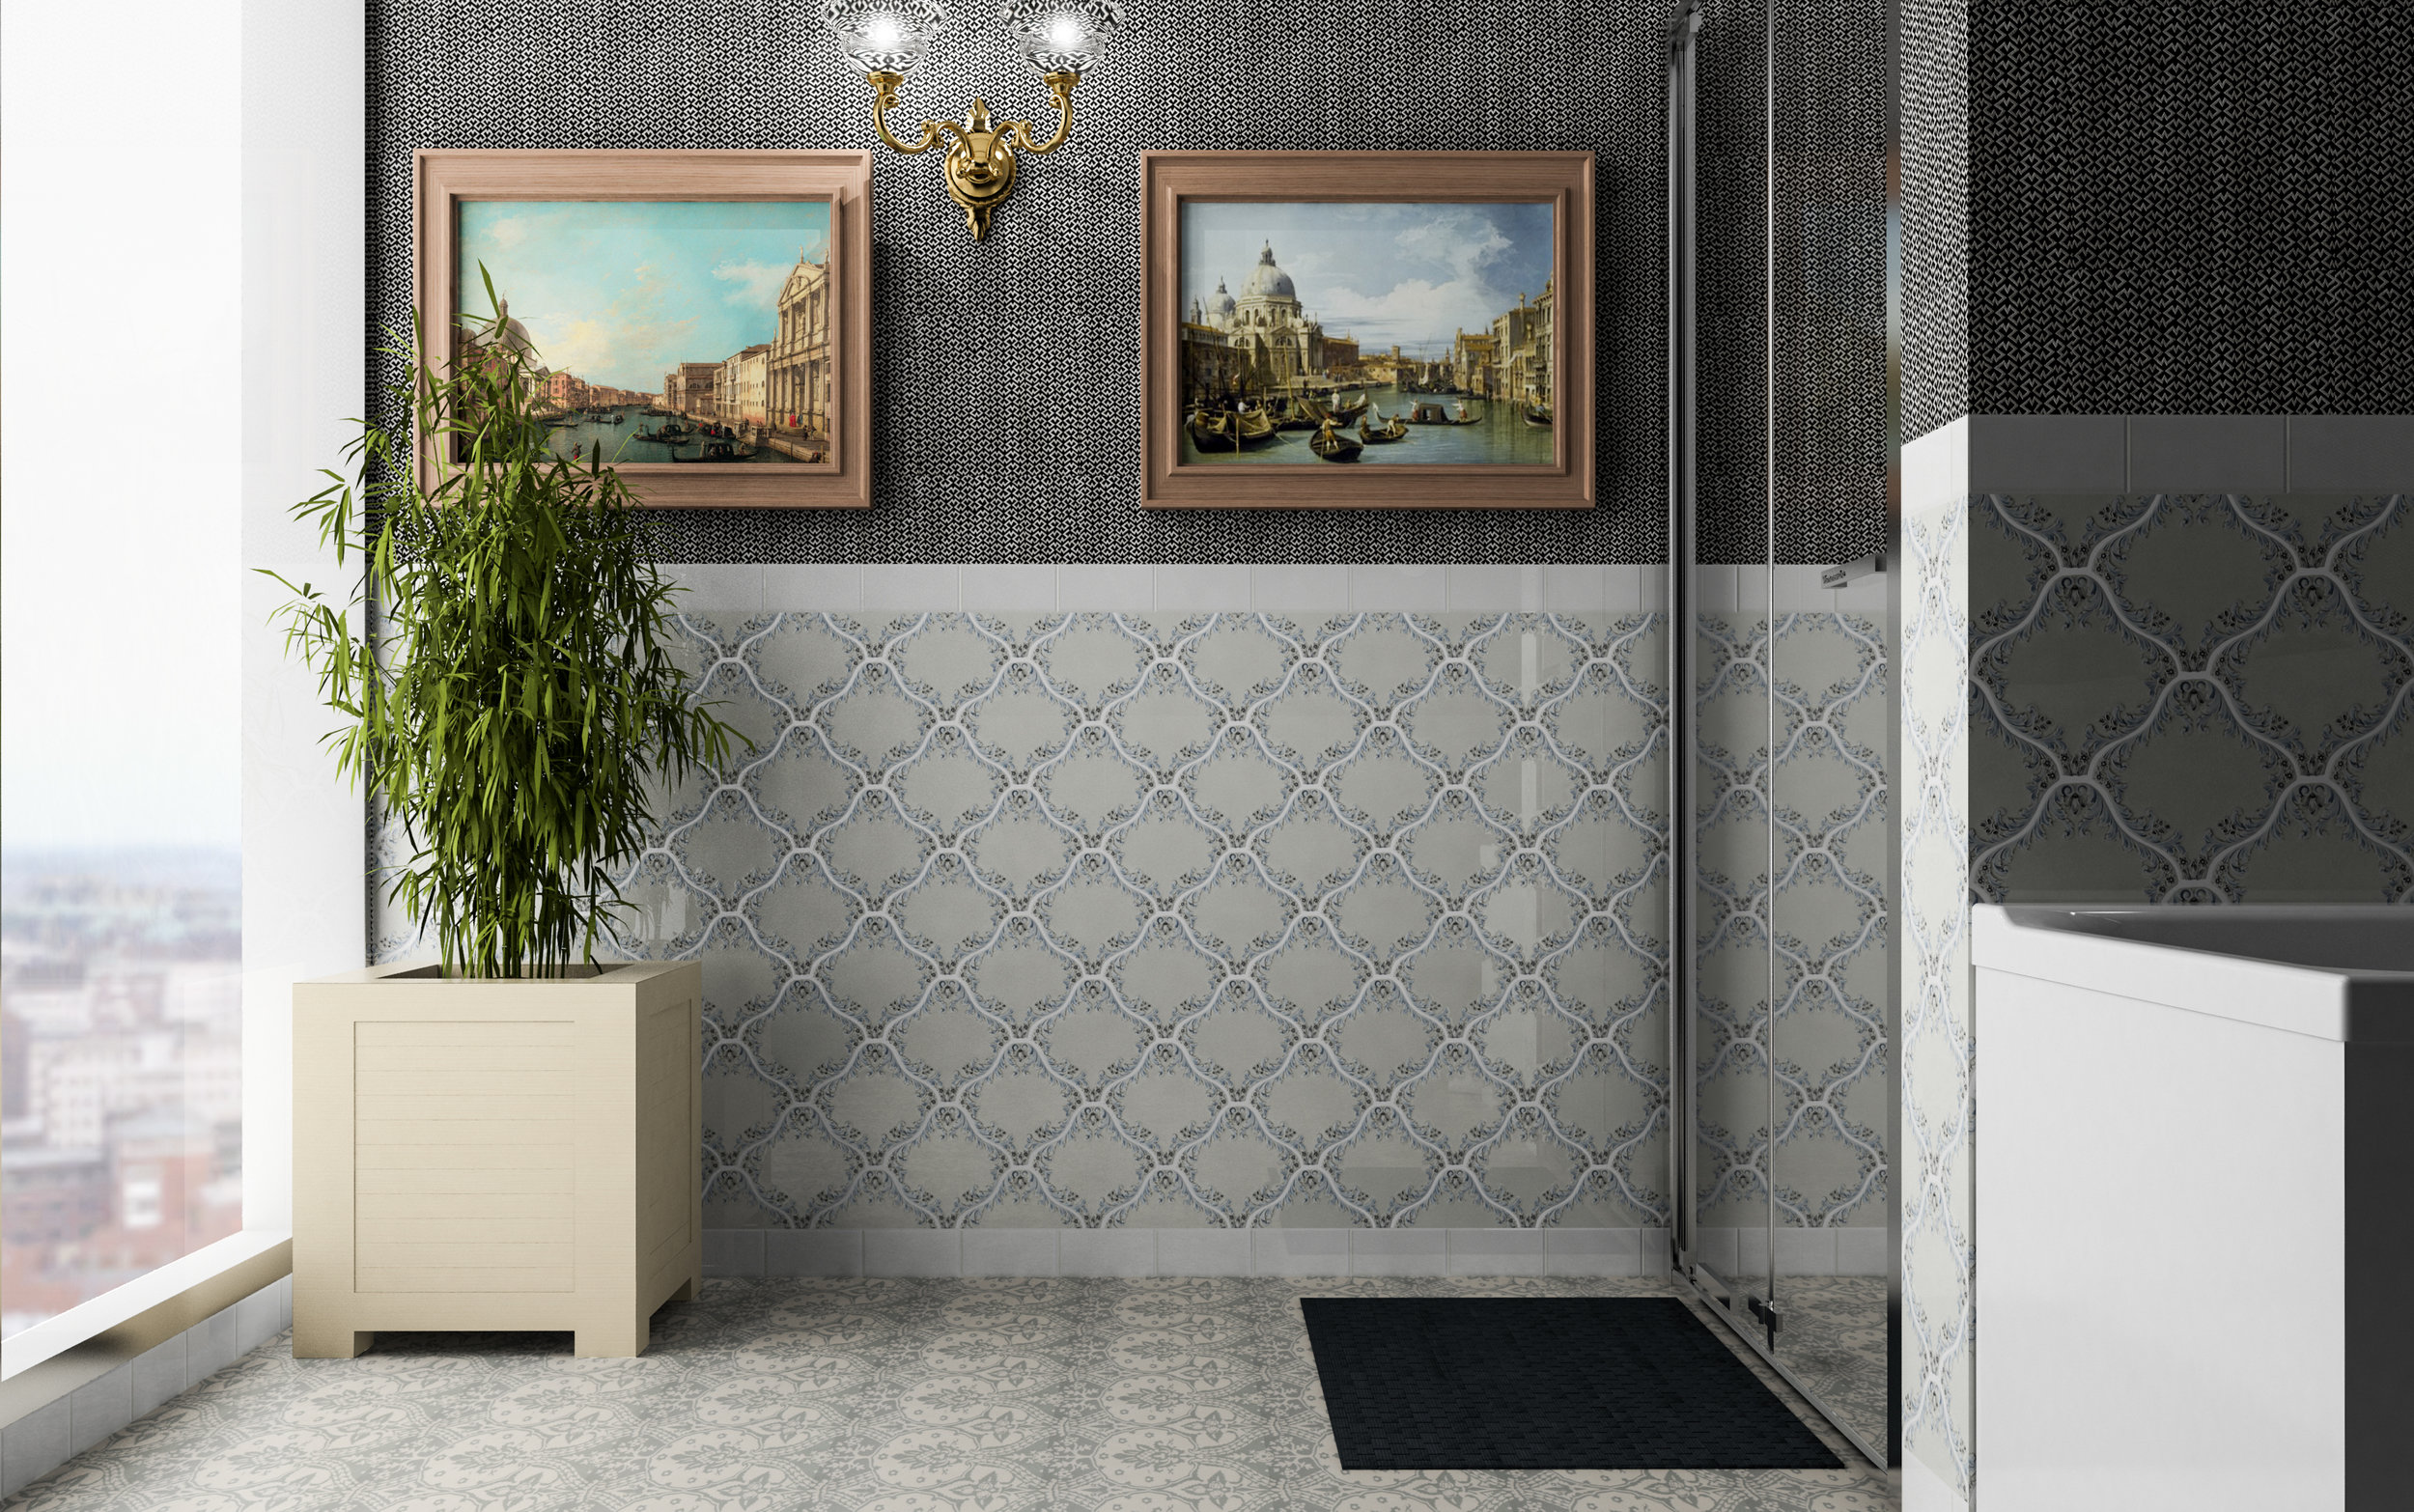 QU - Quemere - Versaille Handpainted - Handpainted tile - Bathroom.jpg